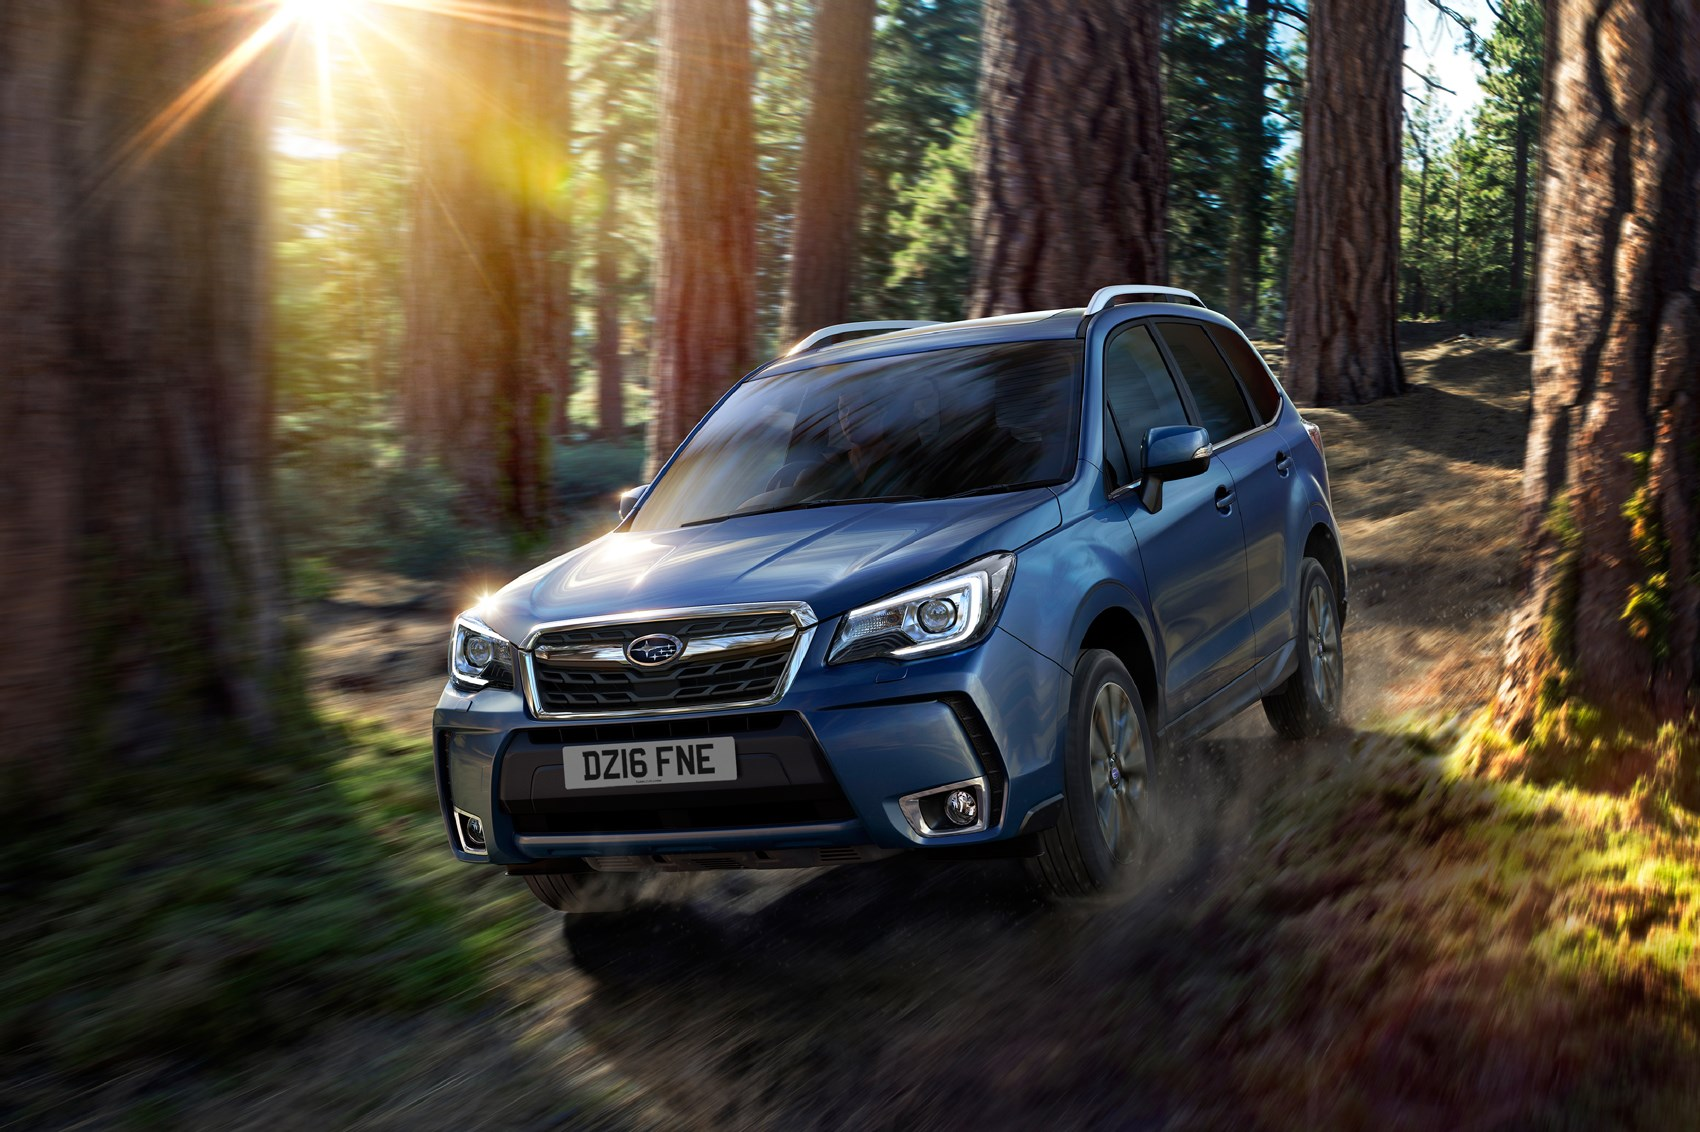 Subaru Forester gets tech and and styling upgrades for 2016